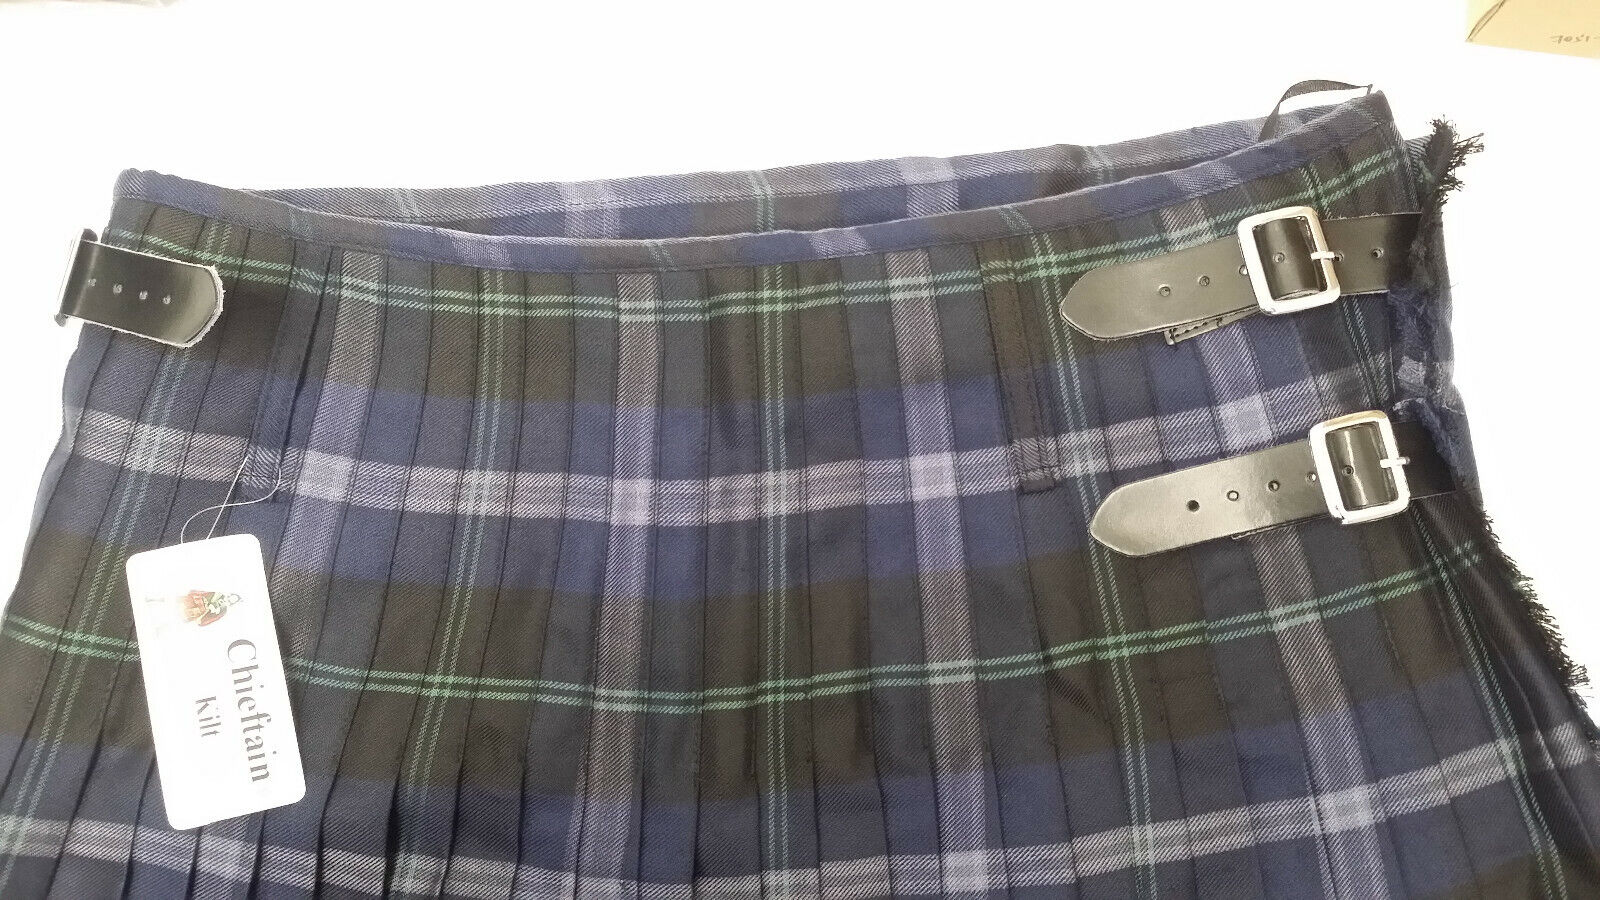 Chieftain Passion Of Scotland PLATINUM 8 Yard Full Kilt - clear out at